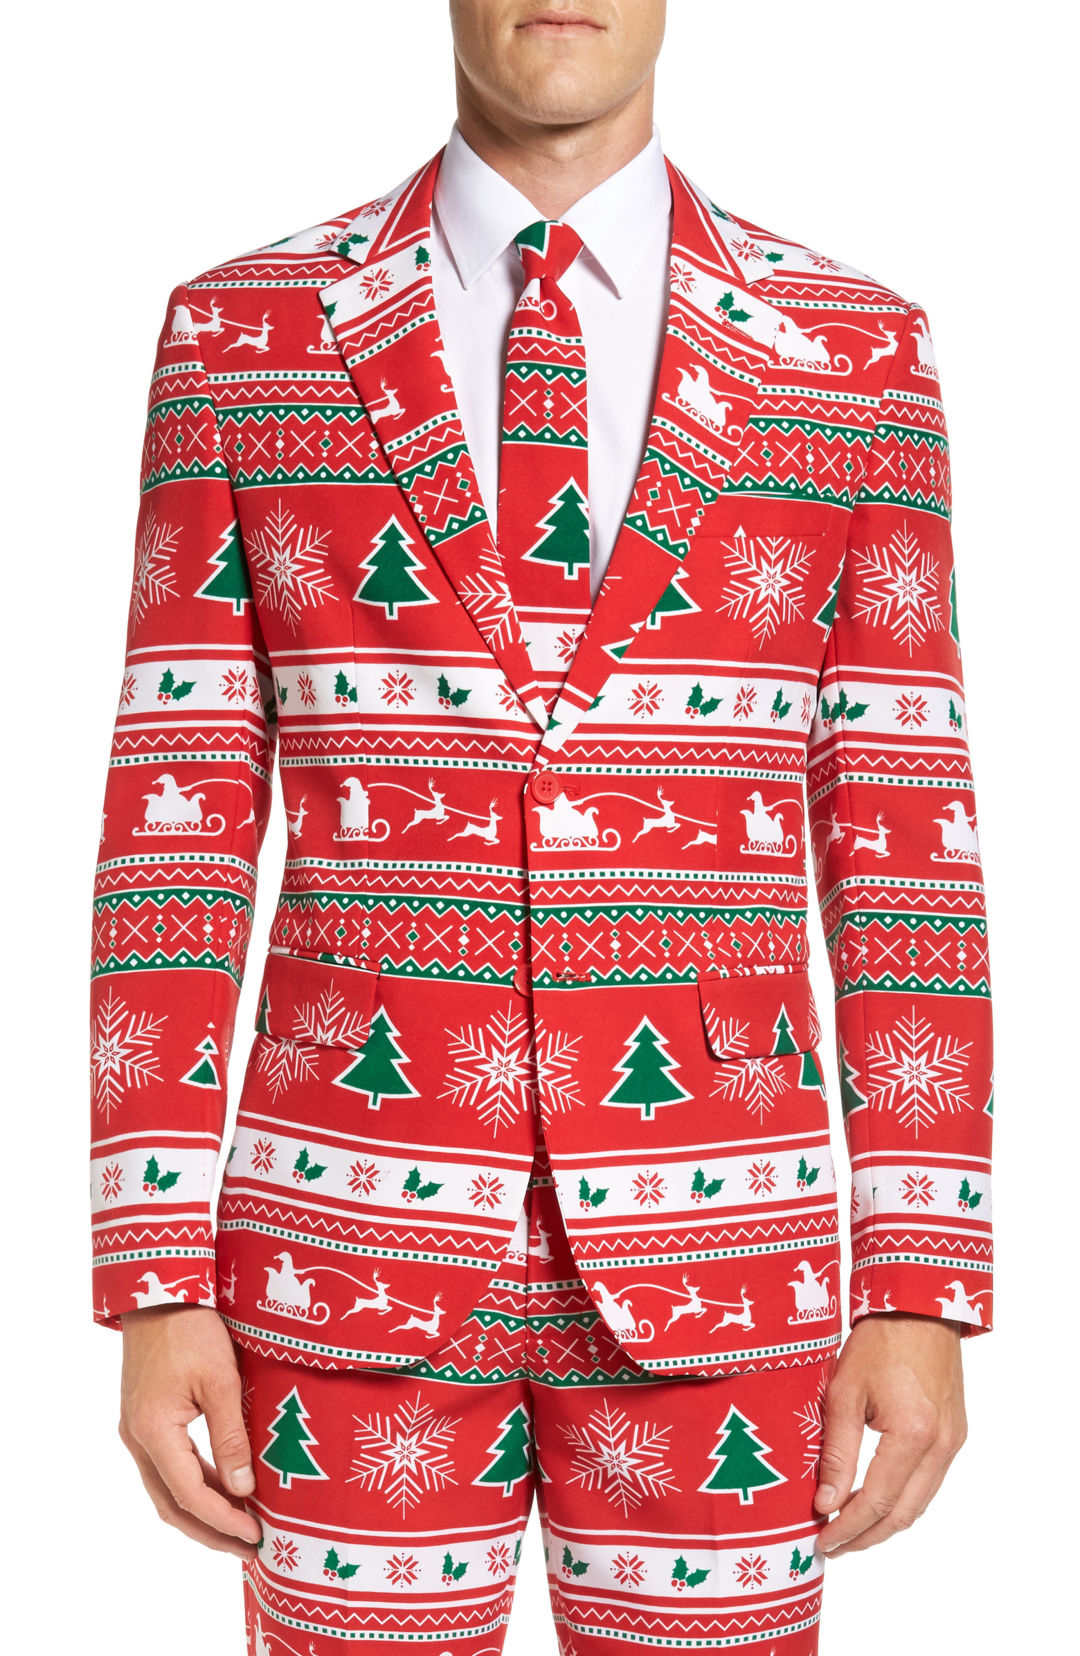 Opposuits  winter wonderland  trim fit two piece suit with tie  99.99 item  5207697 hbuxv2